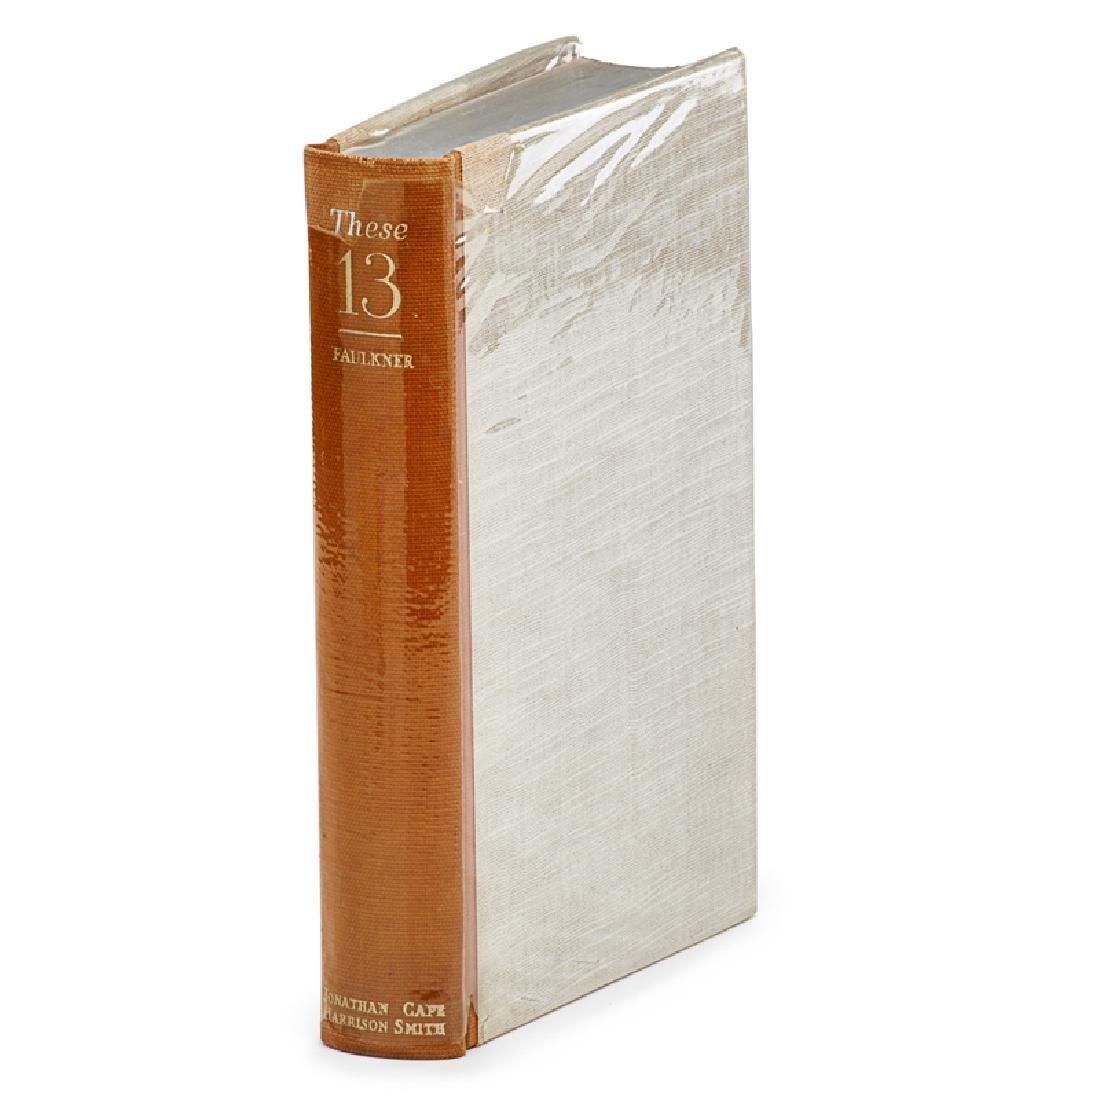 WILLIAM FAULKNER SIGNED U.S. LIMITED FIRST EDITION